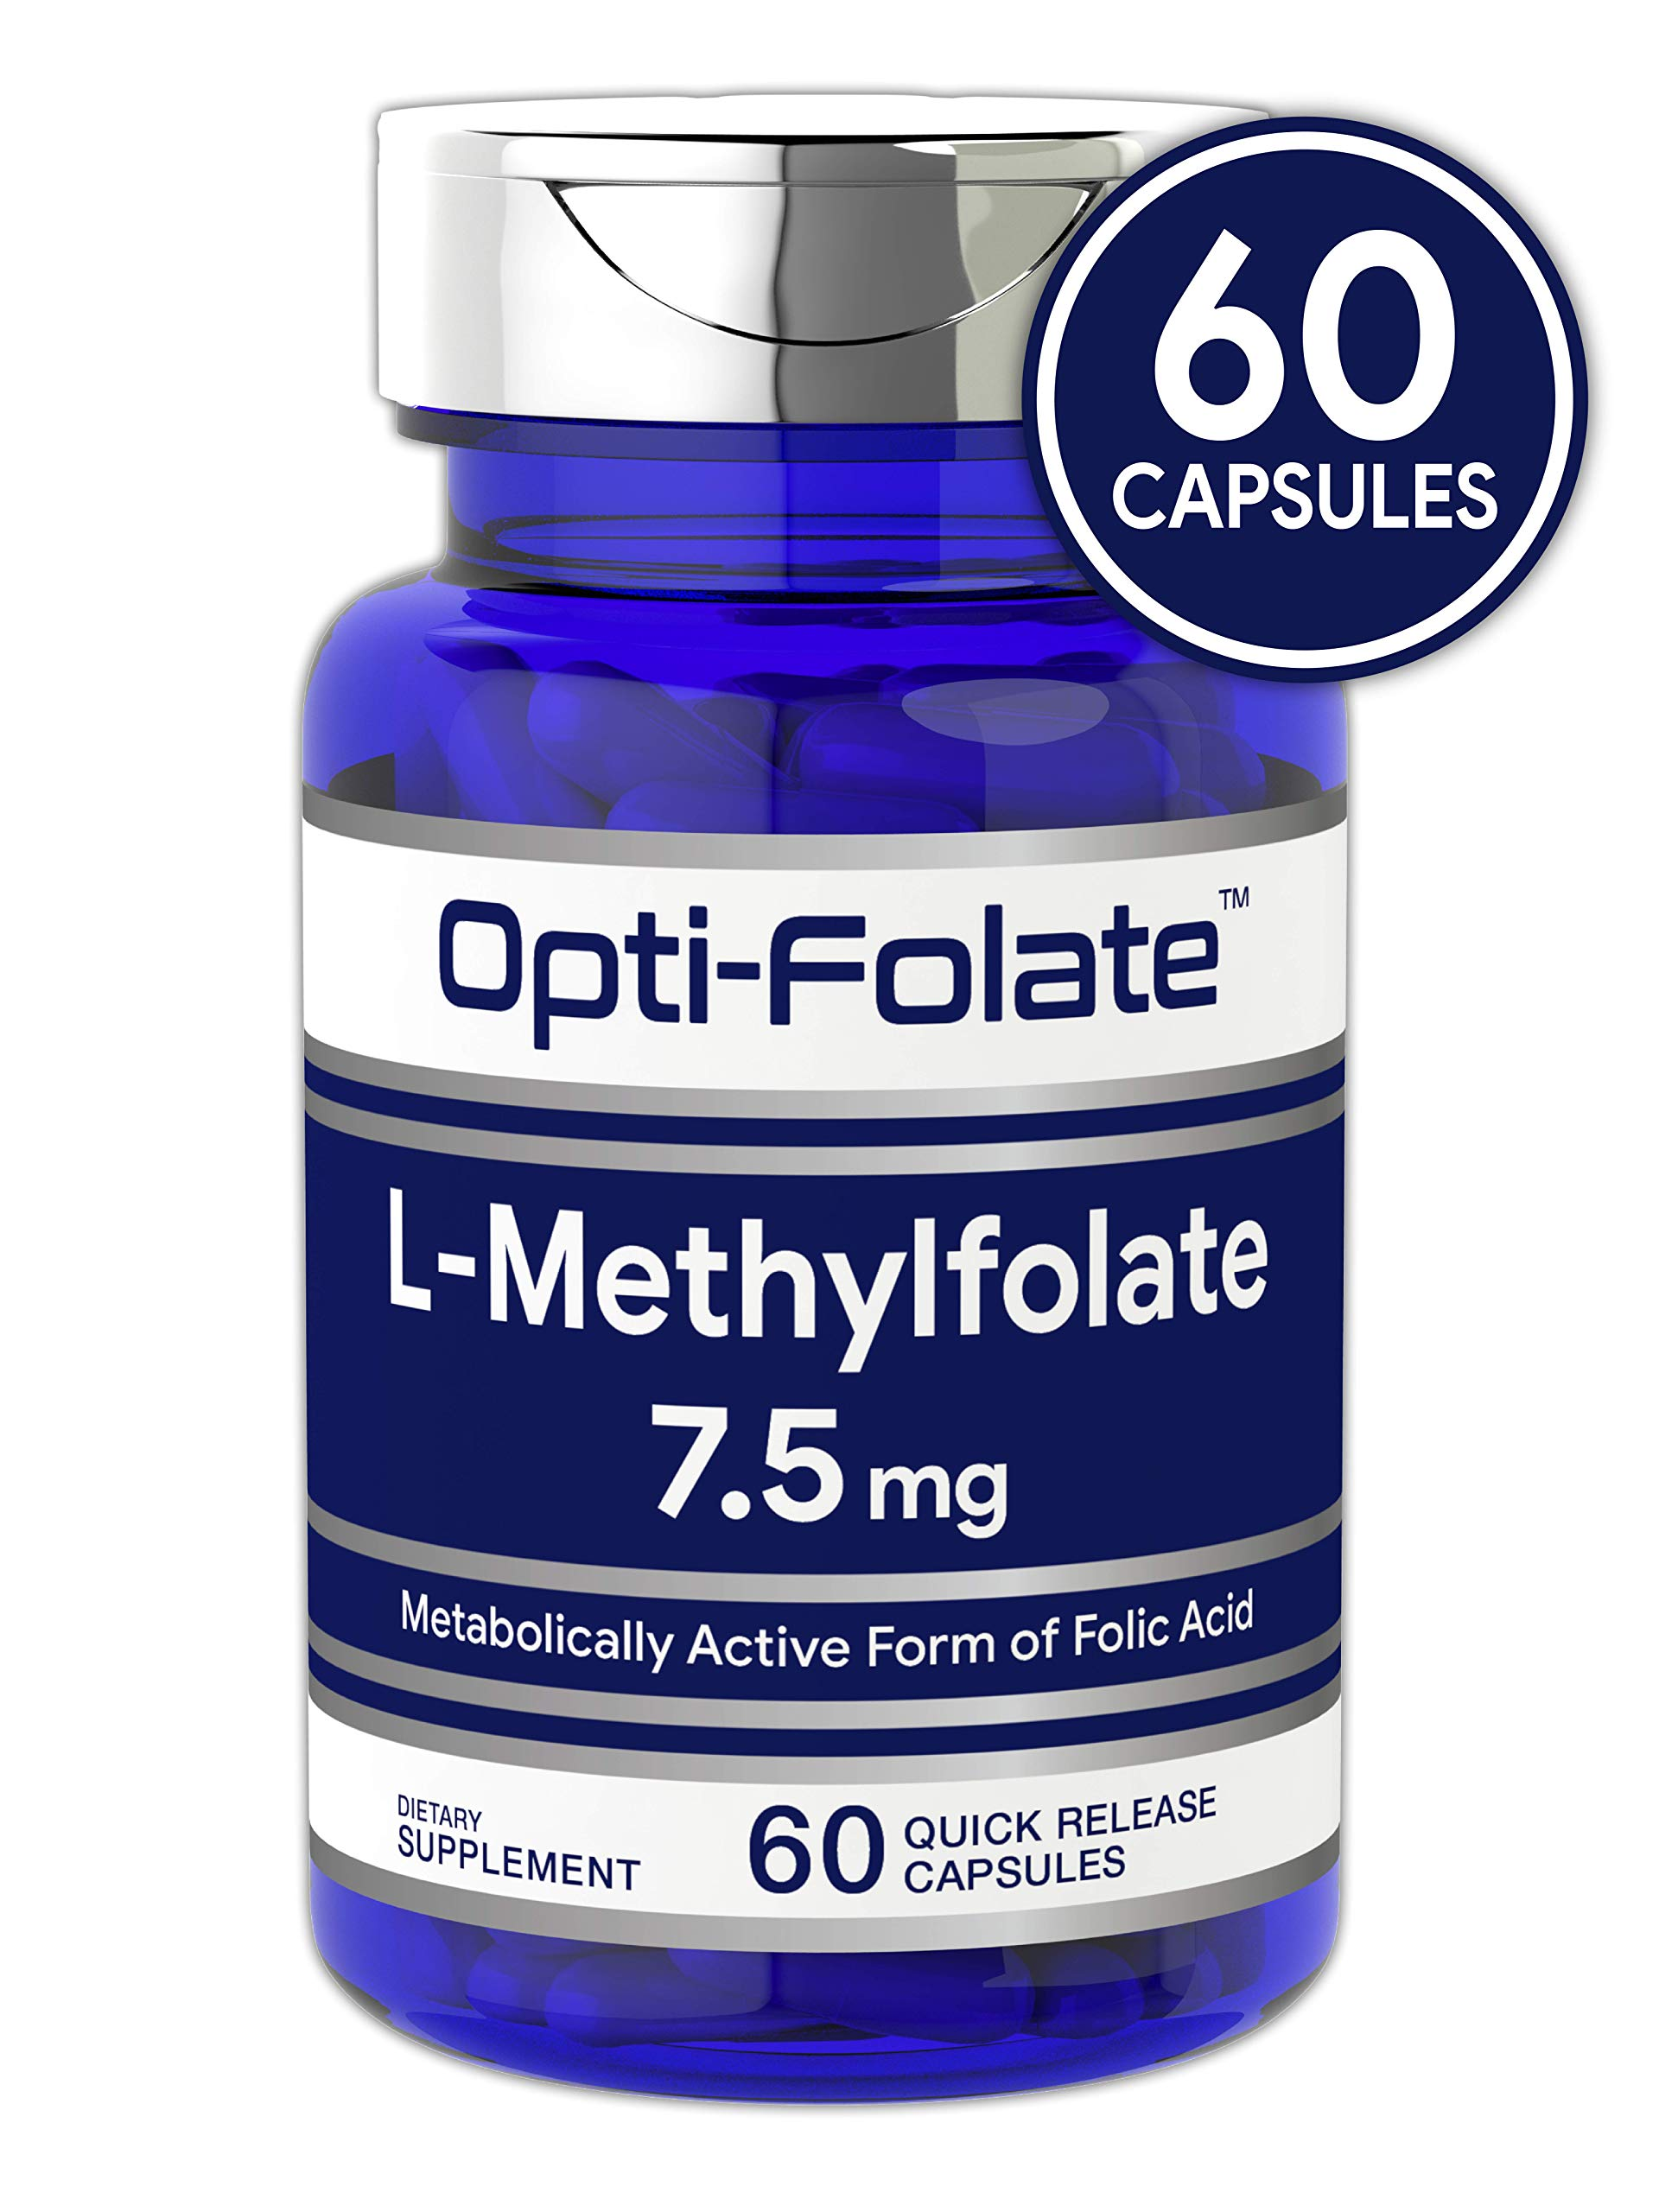 L Methylfolate 7.5 mg | 60 Capsules | Optimized and Activated | Non-GMO, Gluten Free | Methyl Folate, 5-MTHF | by Opti-Folate by Carlyle